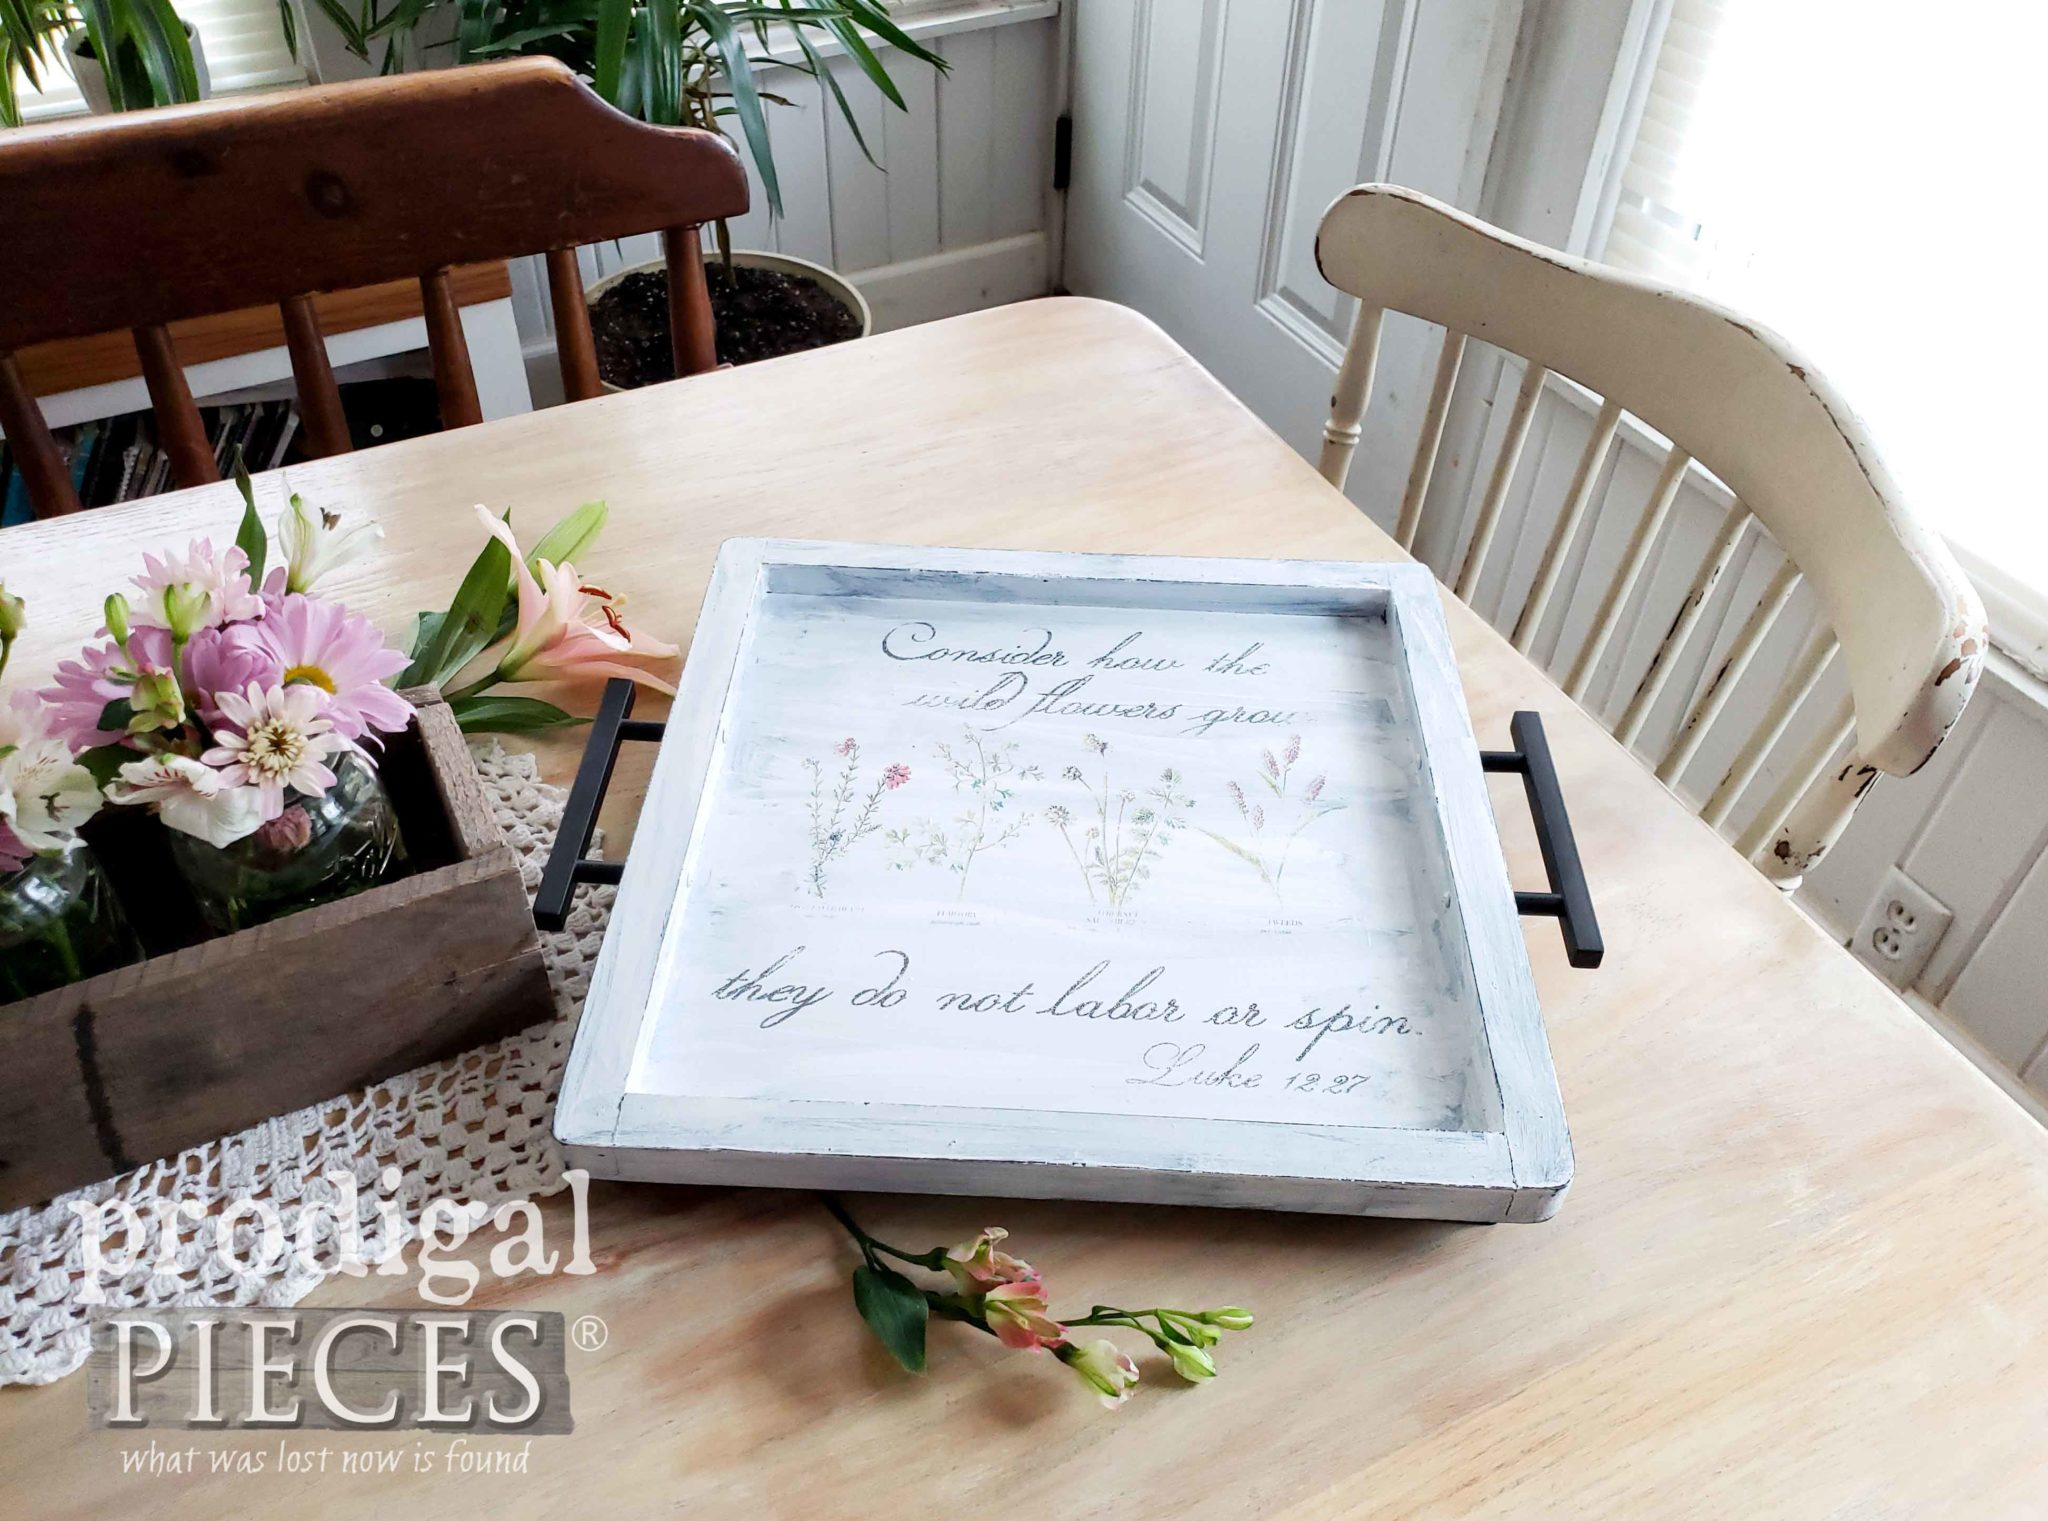 Upcycled Farmhouse Style Serving Tray with Botanical Print | Video tutorial on how to transfer an image by Larissa of Prodigal Pieces at prodigalpieces.com #prodigalpieces #diy #home #vintage #homedecor #farmhouse #videos